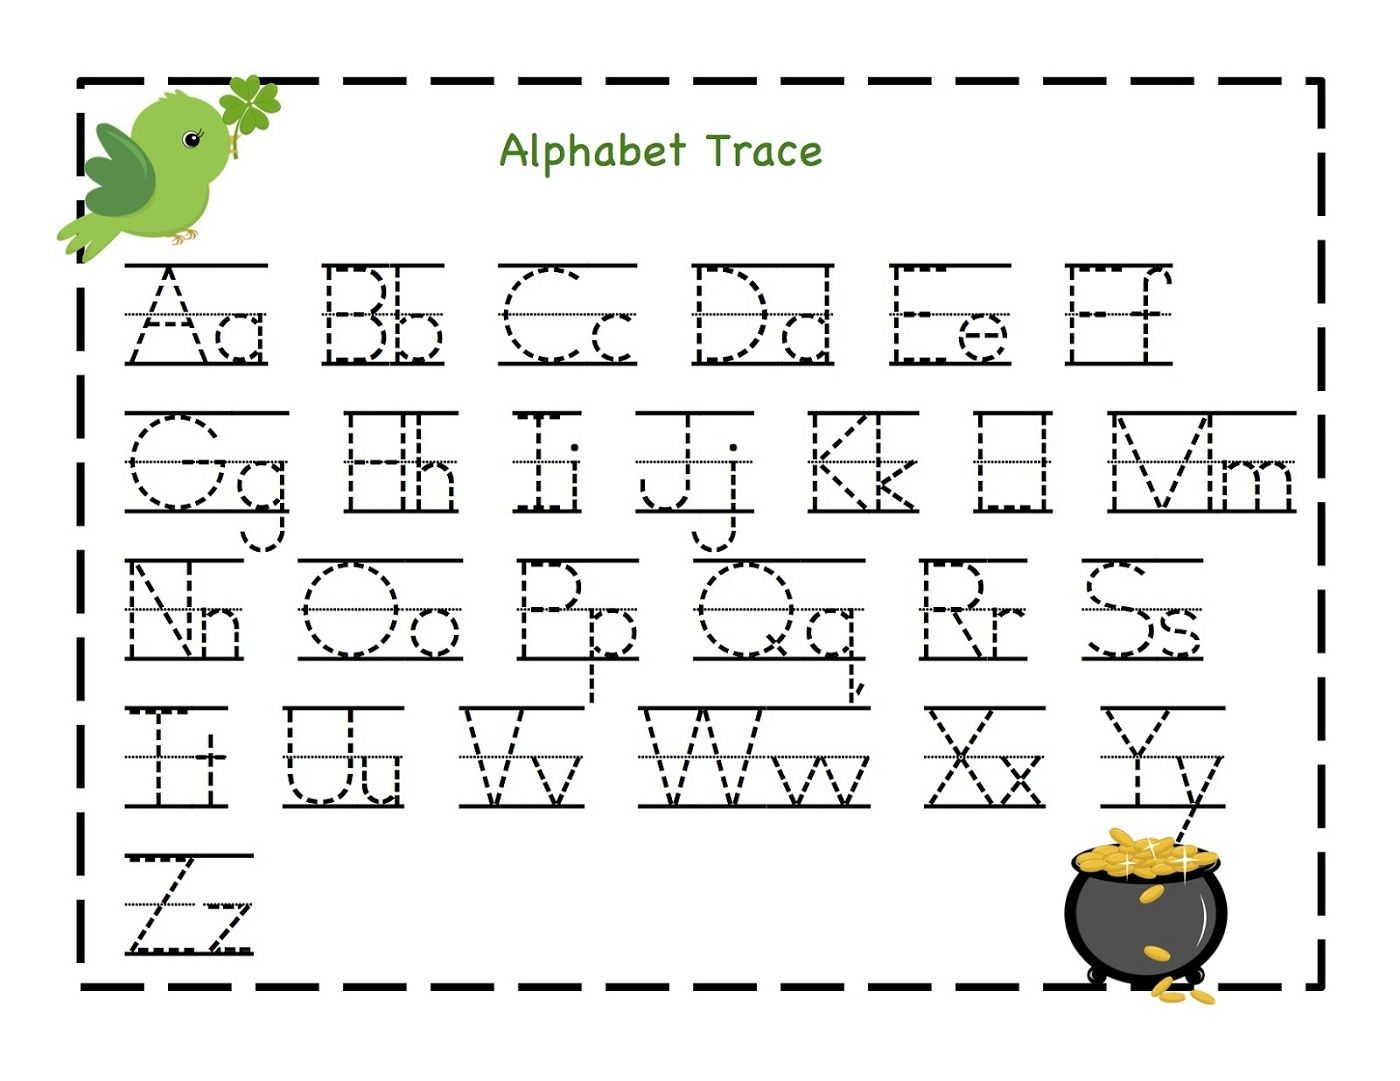 Worksheets Free Alphabet Tracing Worksheets pin by michelle houston on schoolwork for taj and bre pinterest help your kids learning abc in fun way these traceable letter worksheets to print will learn letters ea